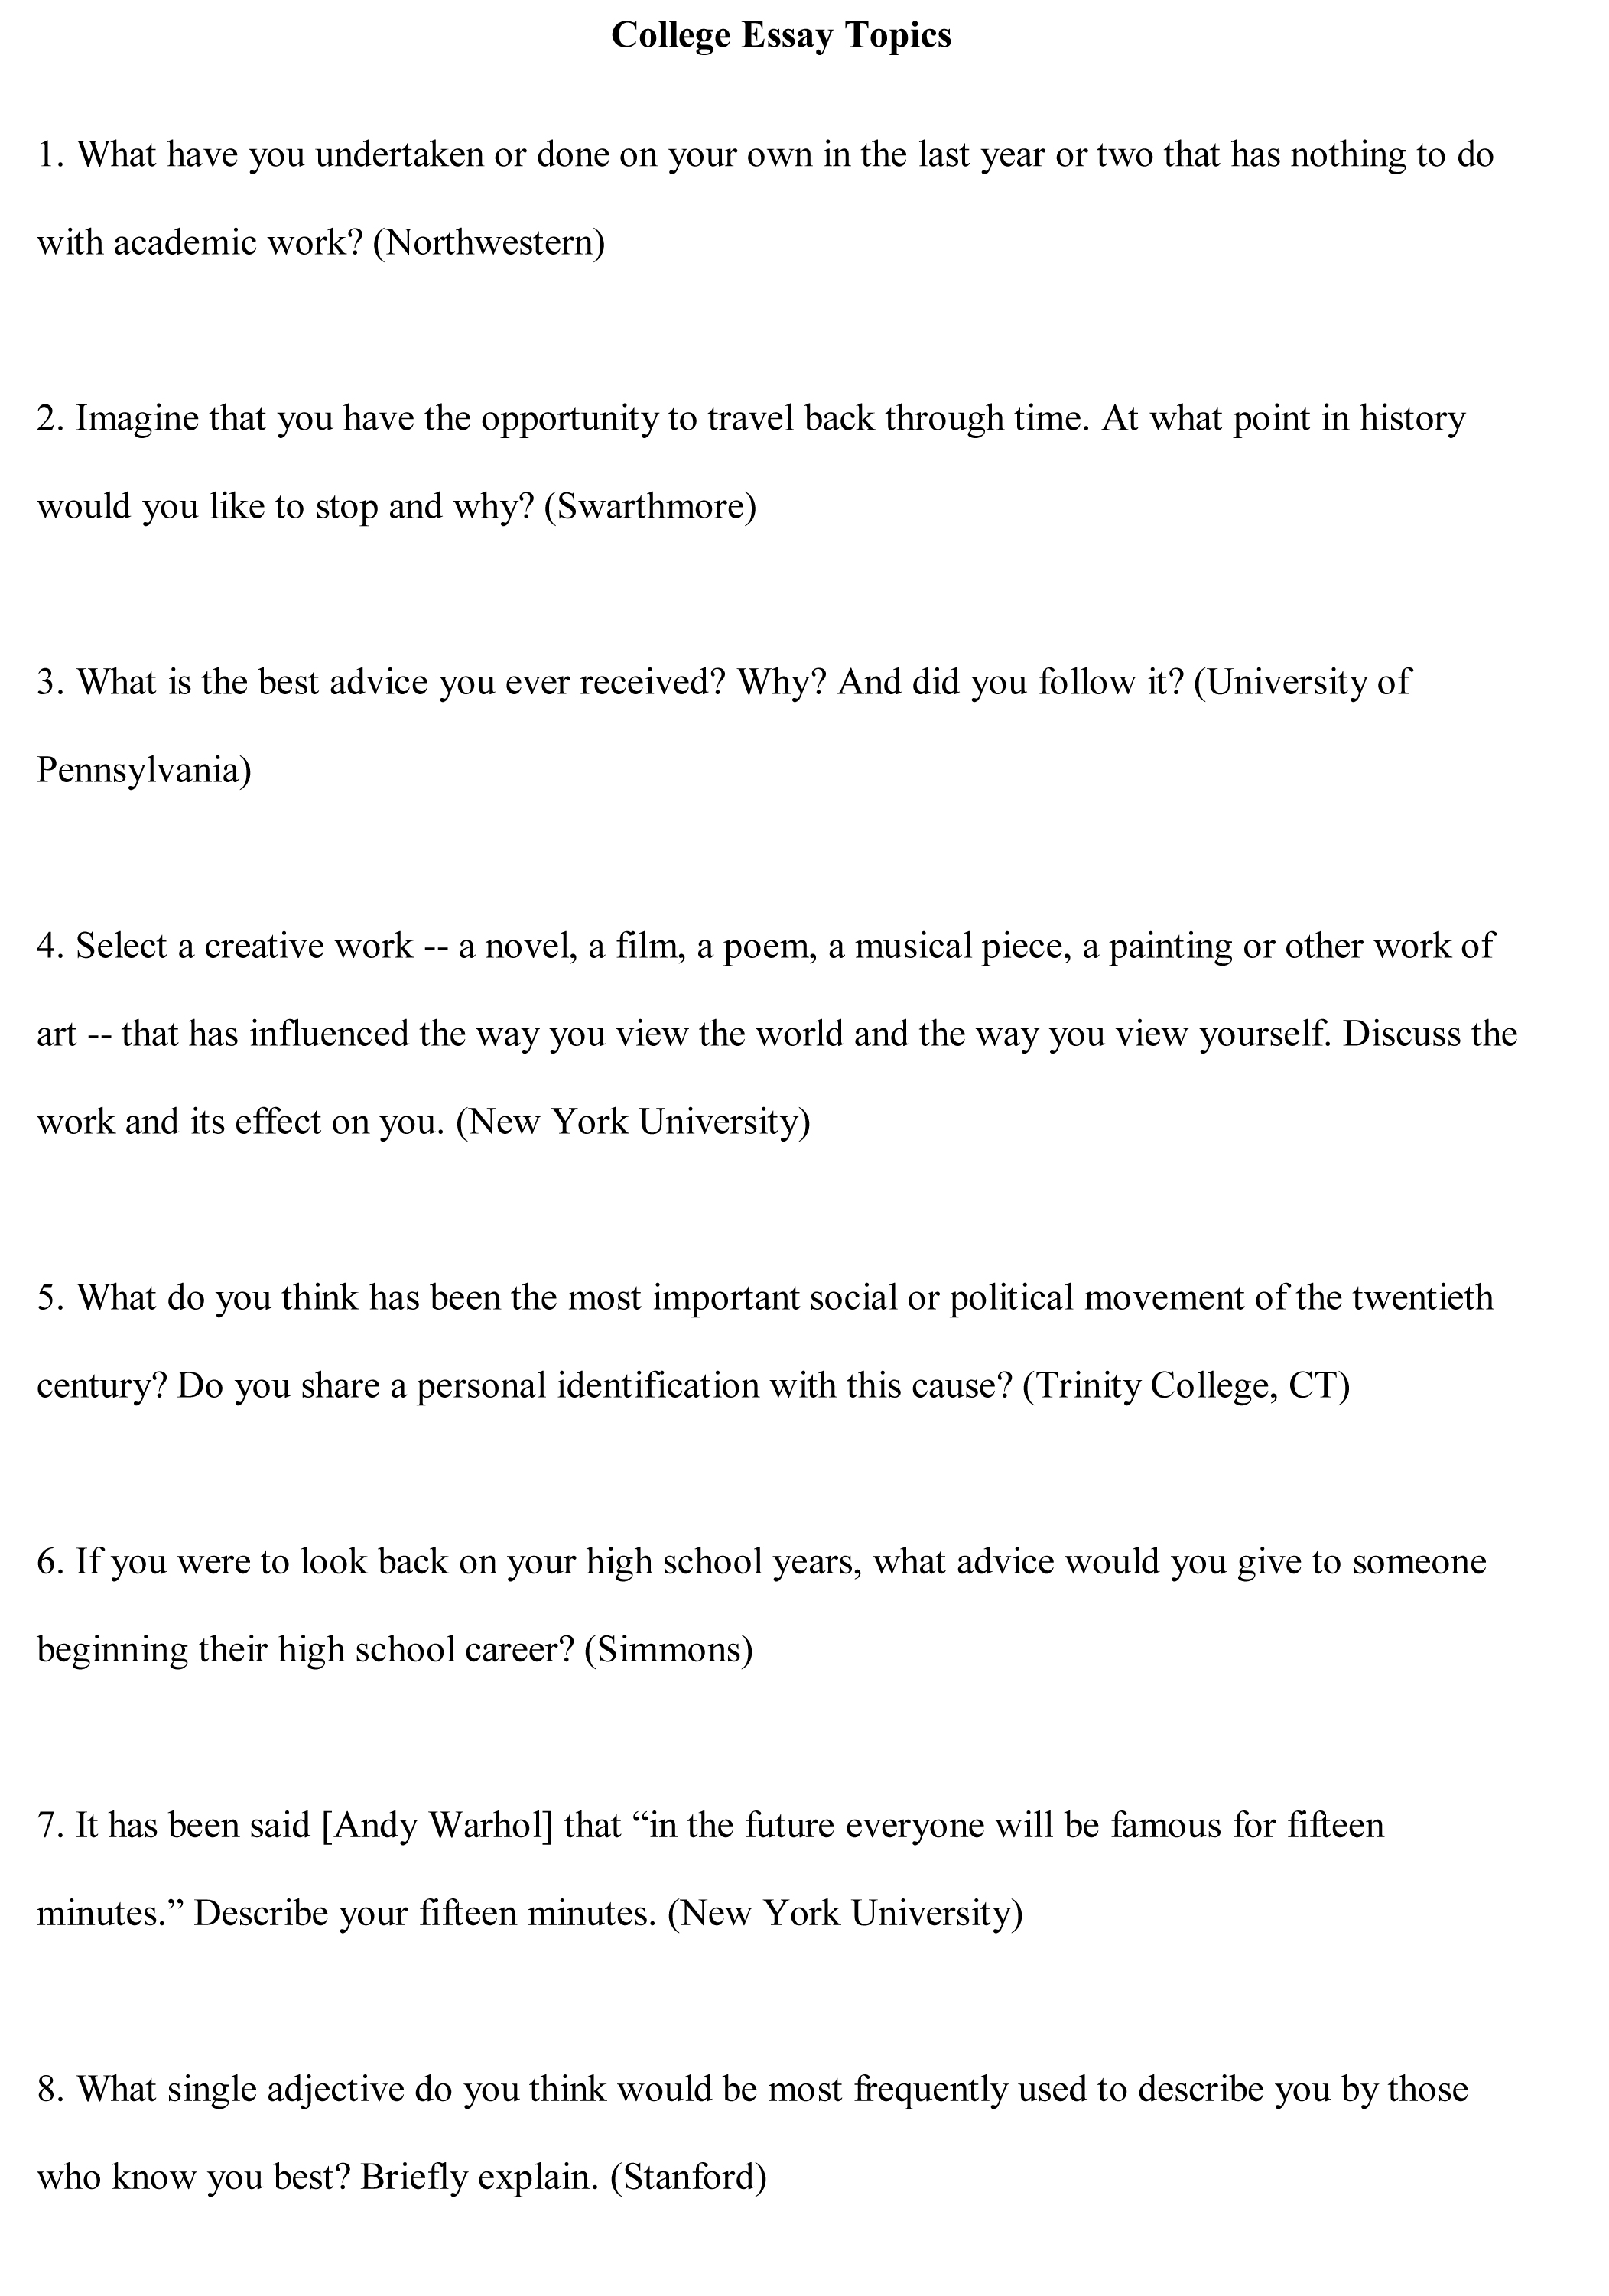 003 College Essay Topics Free Sample1 Prompts Impressive About Yourself Texas Tech Full